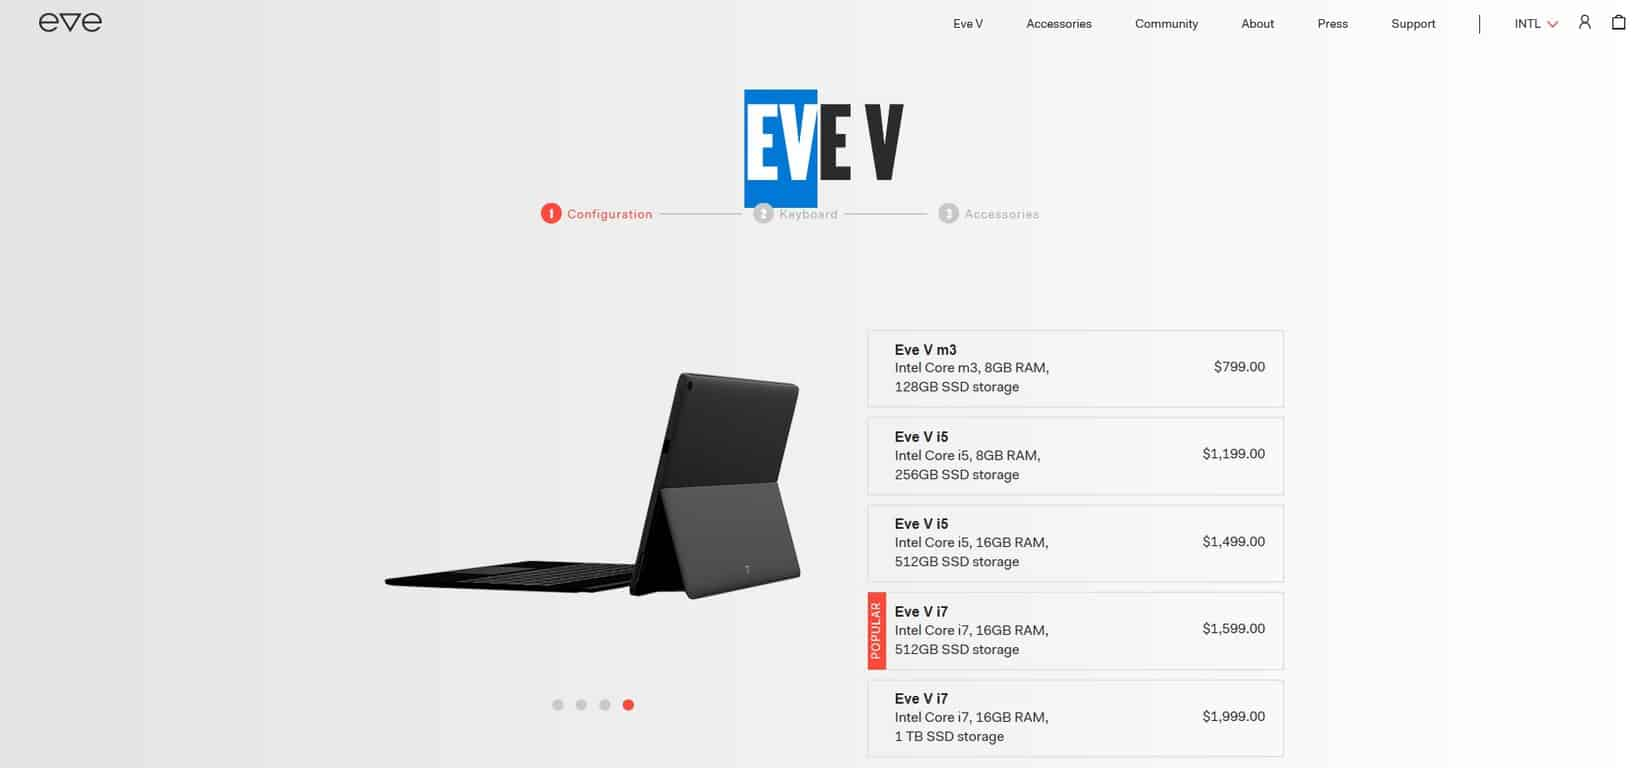 Eve v 2-in-1 tablet goes up for sale in limited quantities - onmsft. Com - december 4, 2017